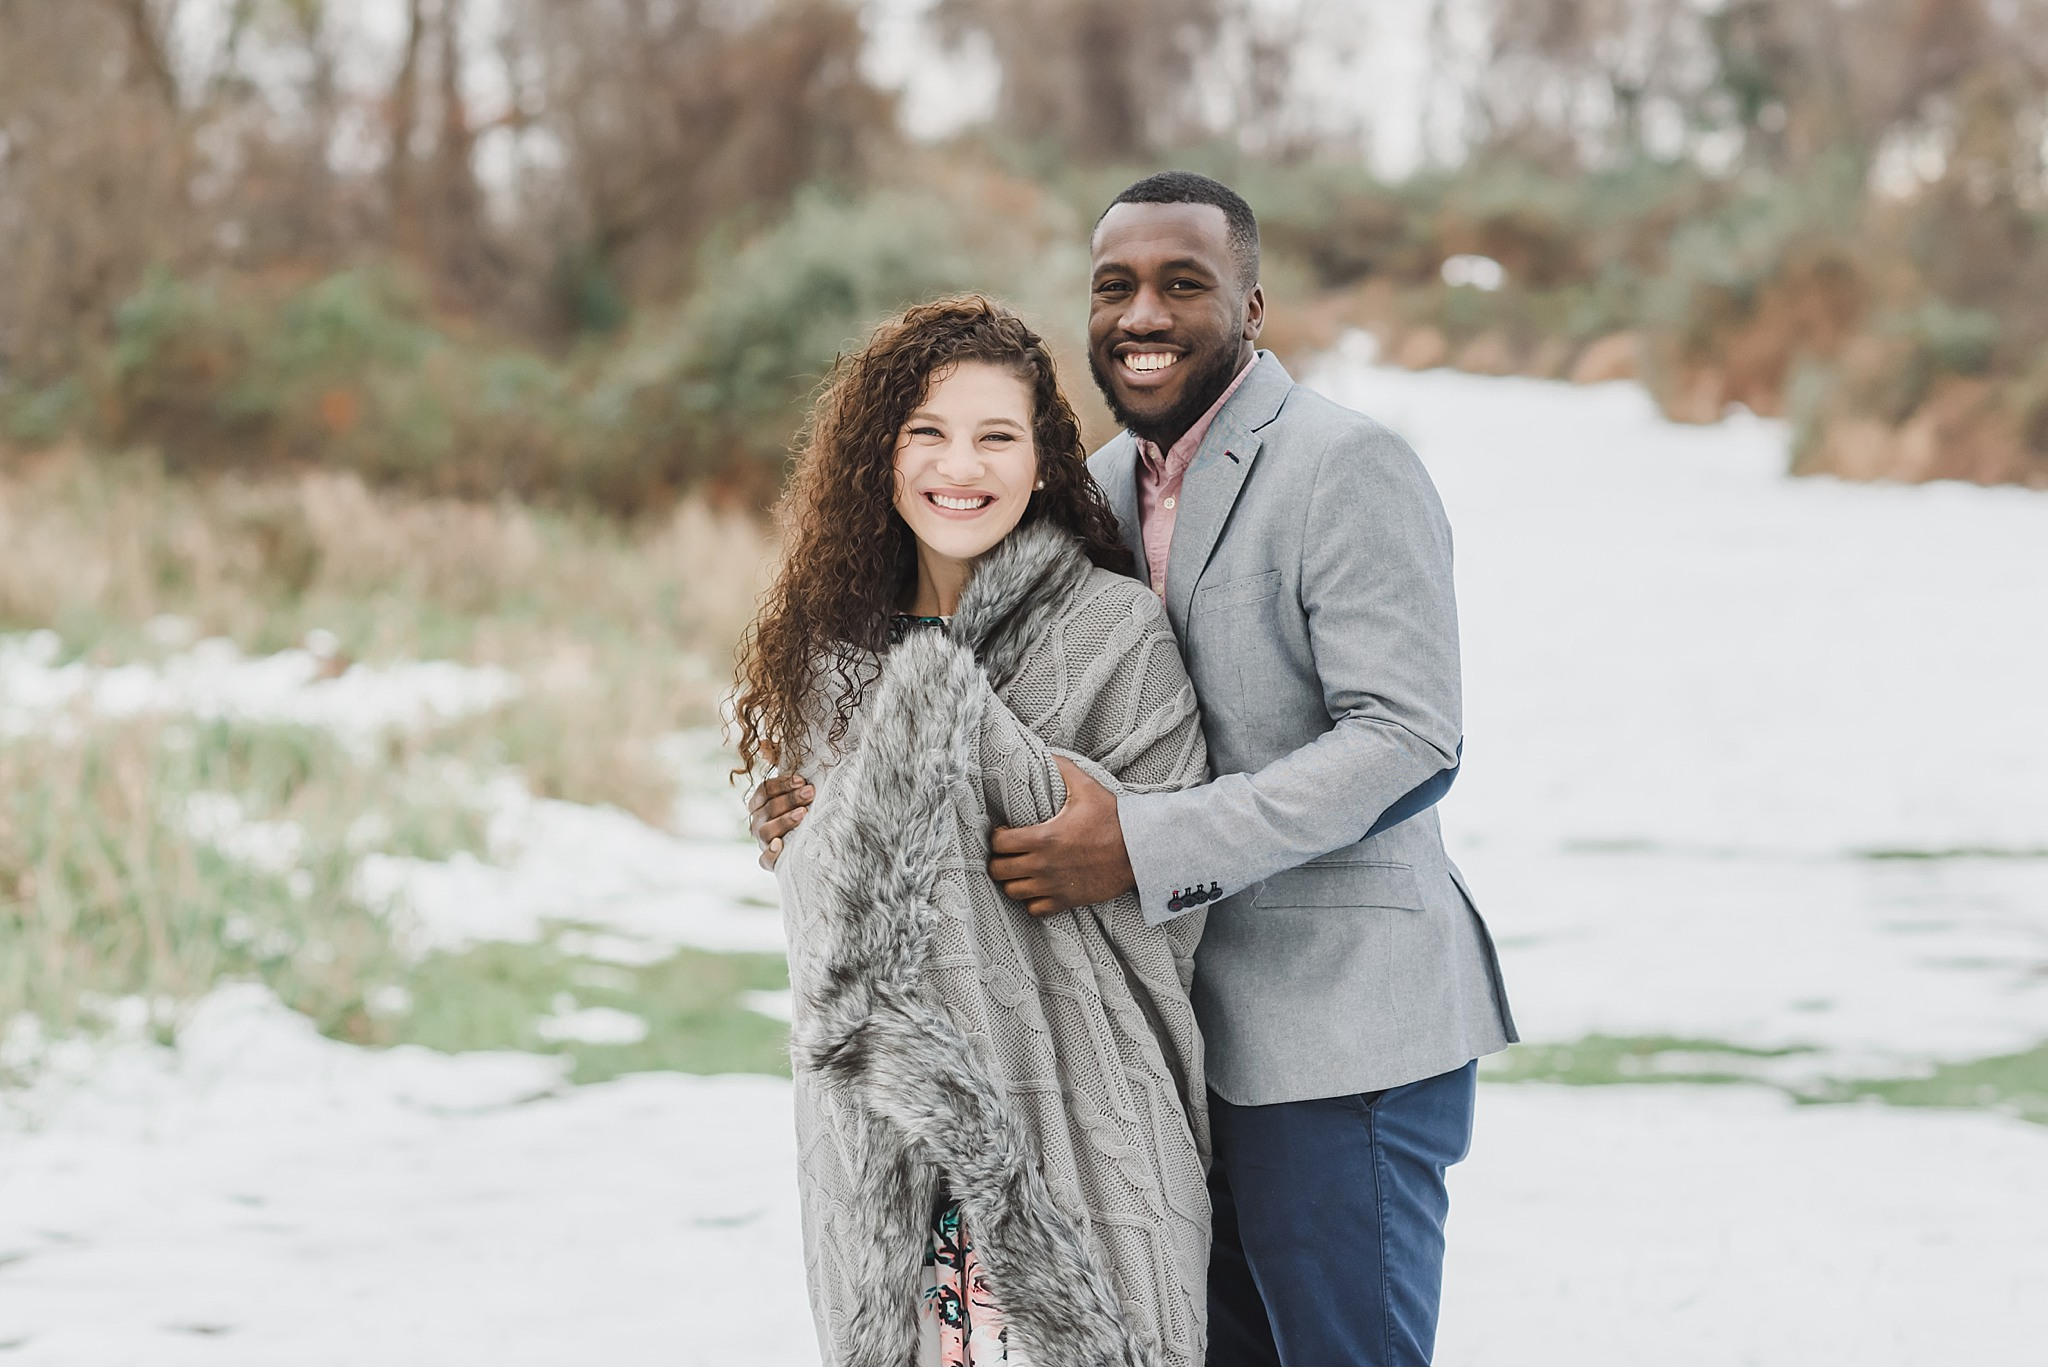 Snowy winter engagement Lancaster County Park Wedding photography photo_2858.jpg